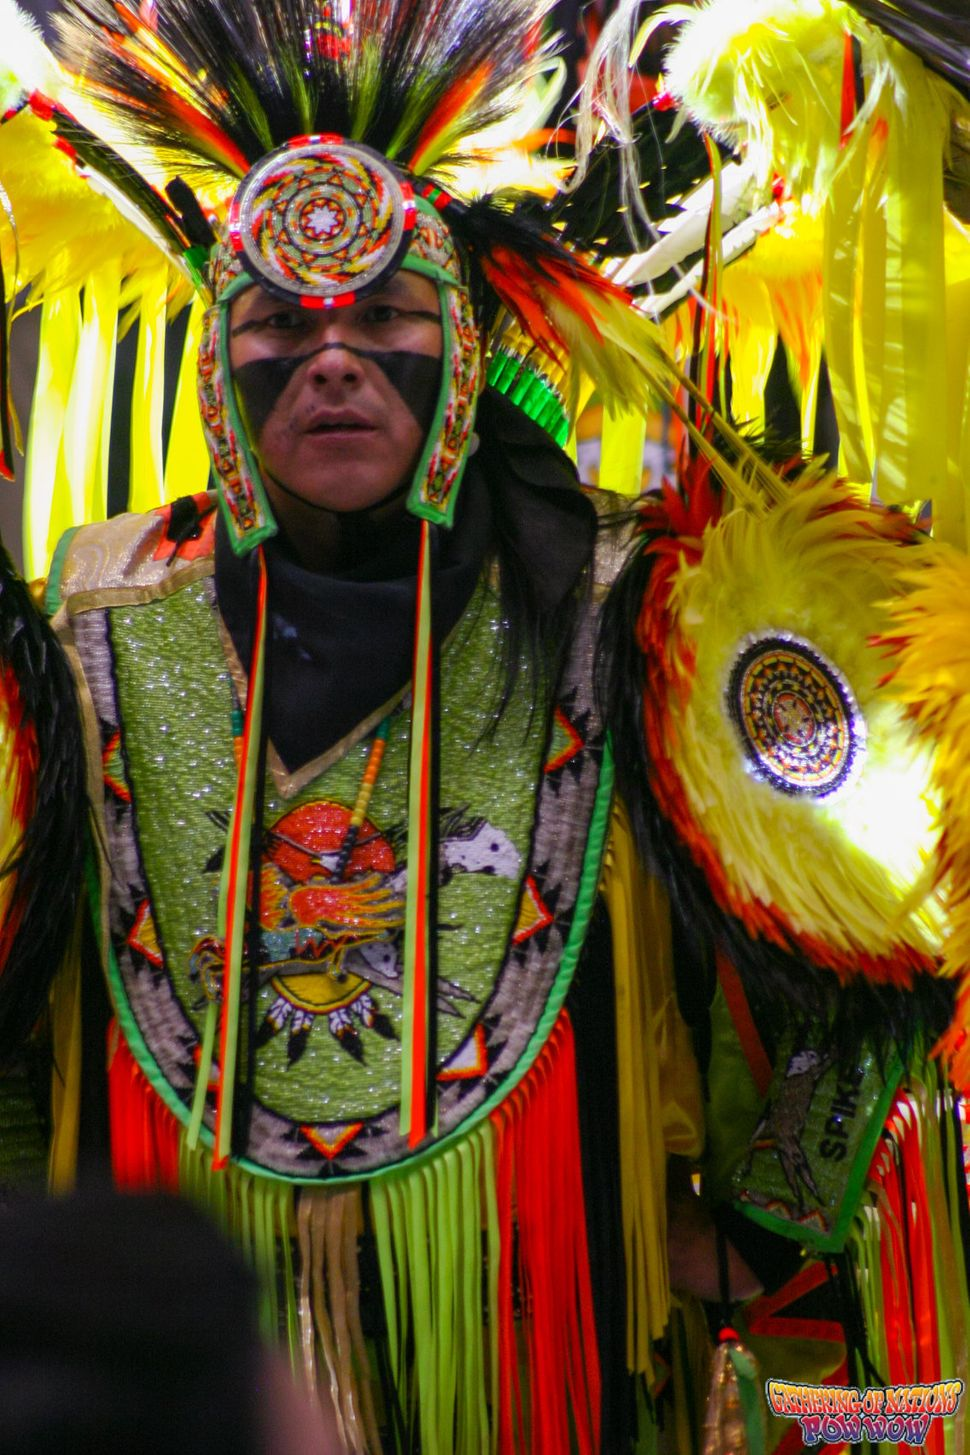 Spike Draper posthumously honored as the Head Man Dancer at 2016 Gathering of Nations.